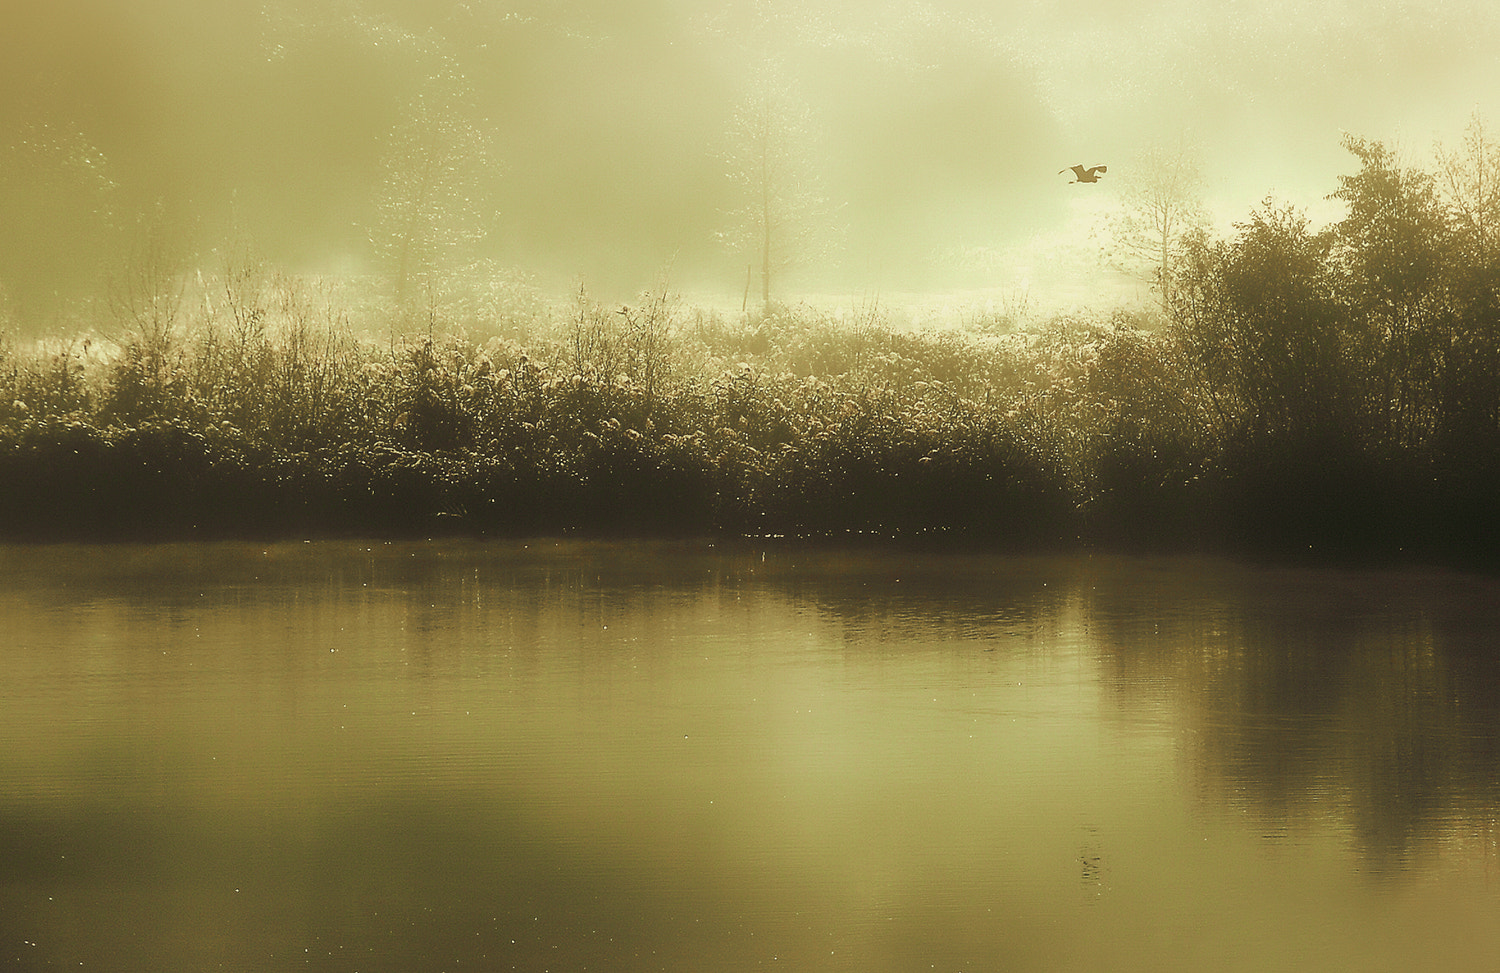 Photograph morning flight by Andy 58 on 500px